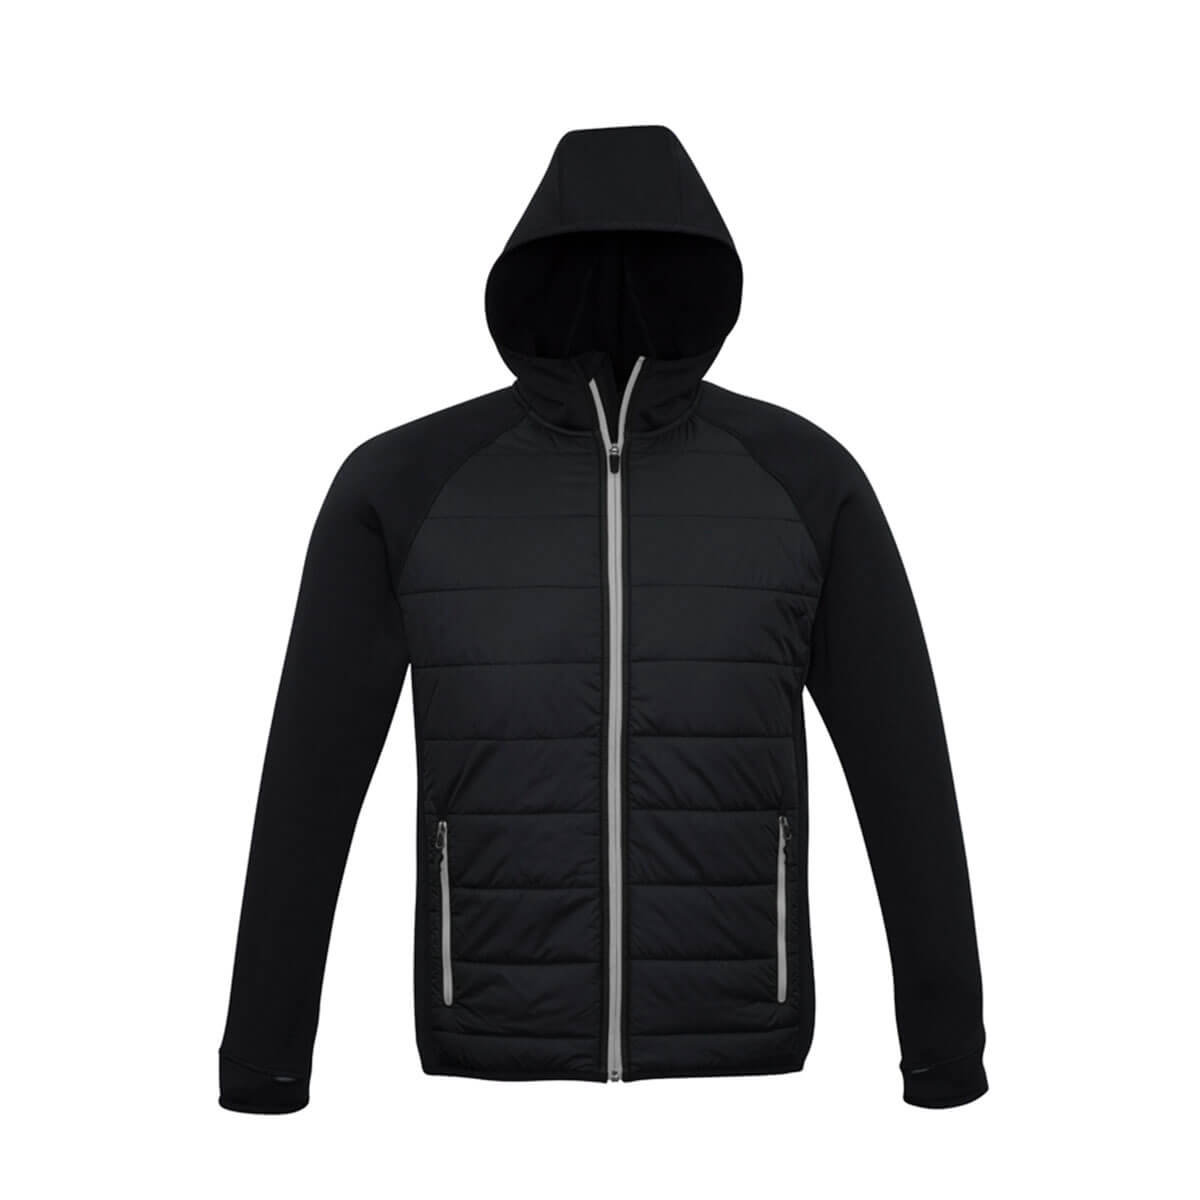 Mens Stealth Tech Hoodie-Black / Silver Grey